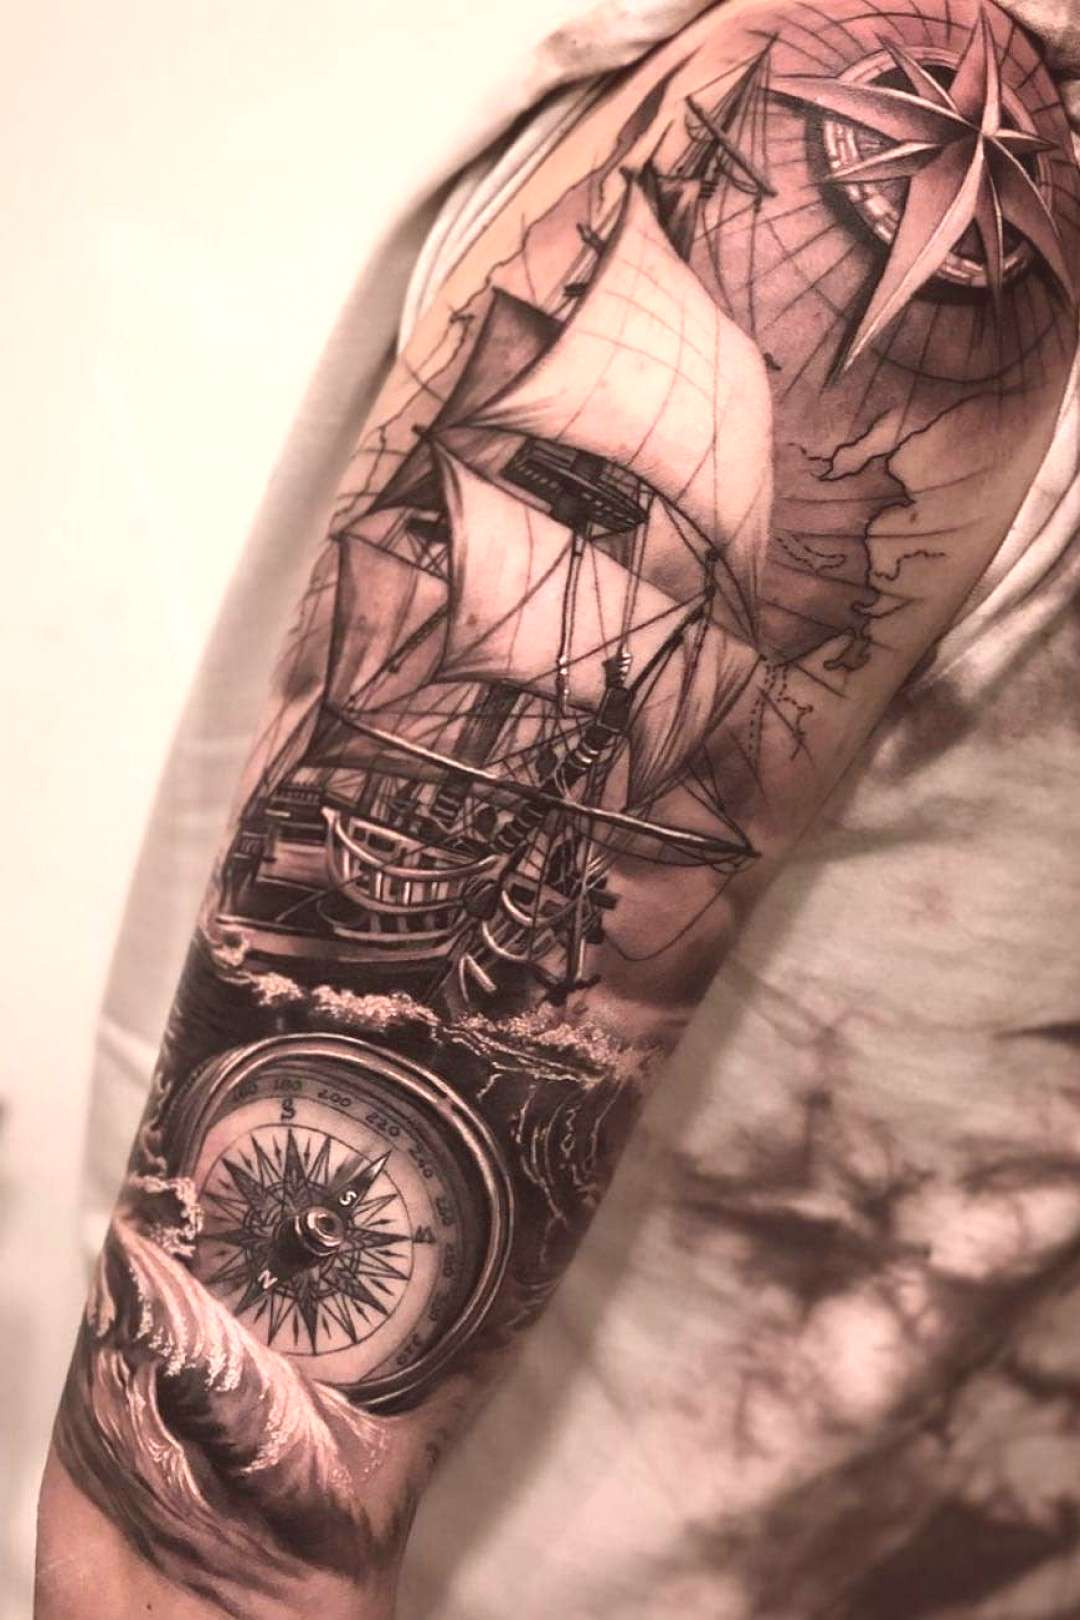 39+ amazing and best arm tattoo design ideas for 2019 part 12 - pirates ... - 39+ amazing and best